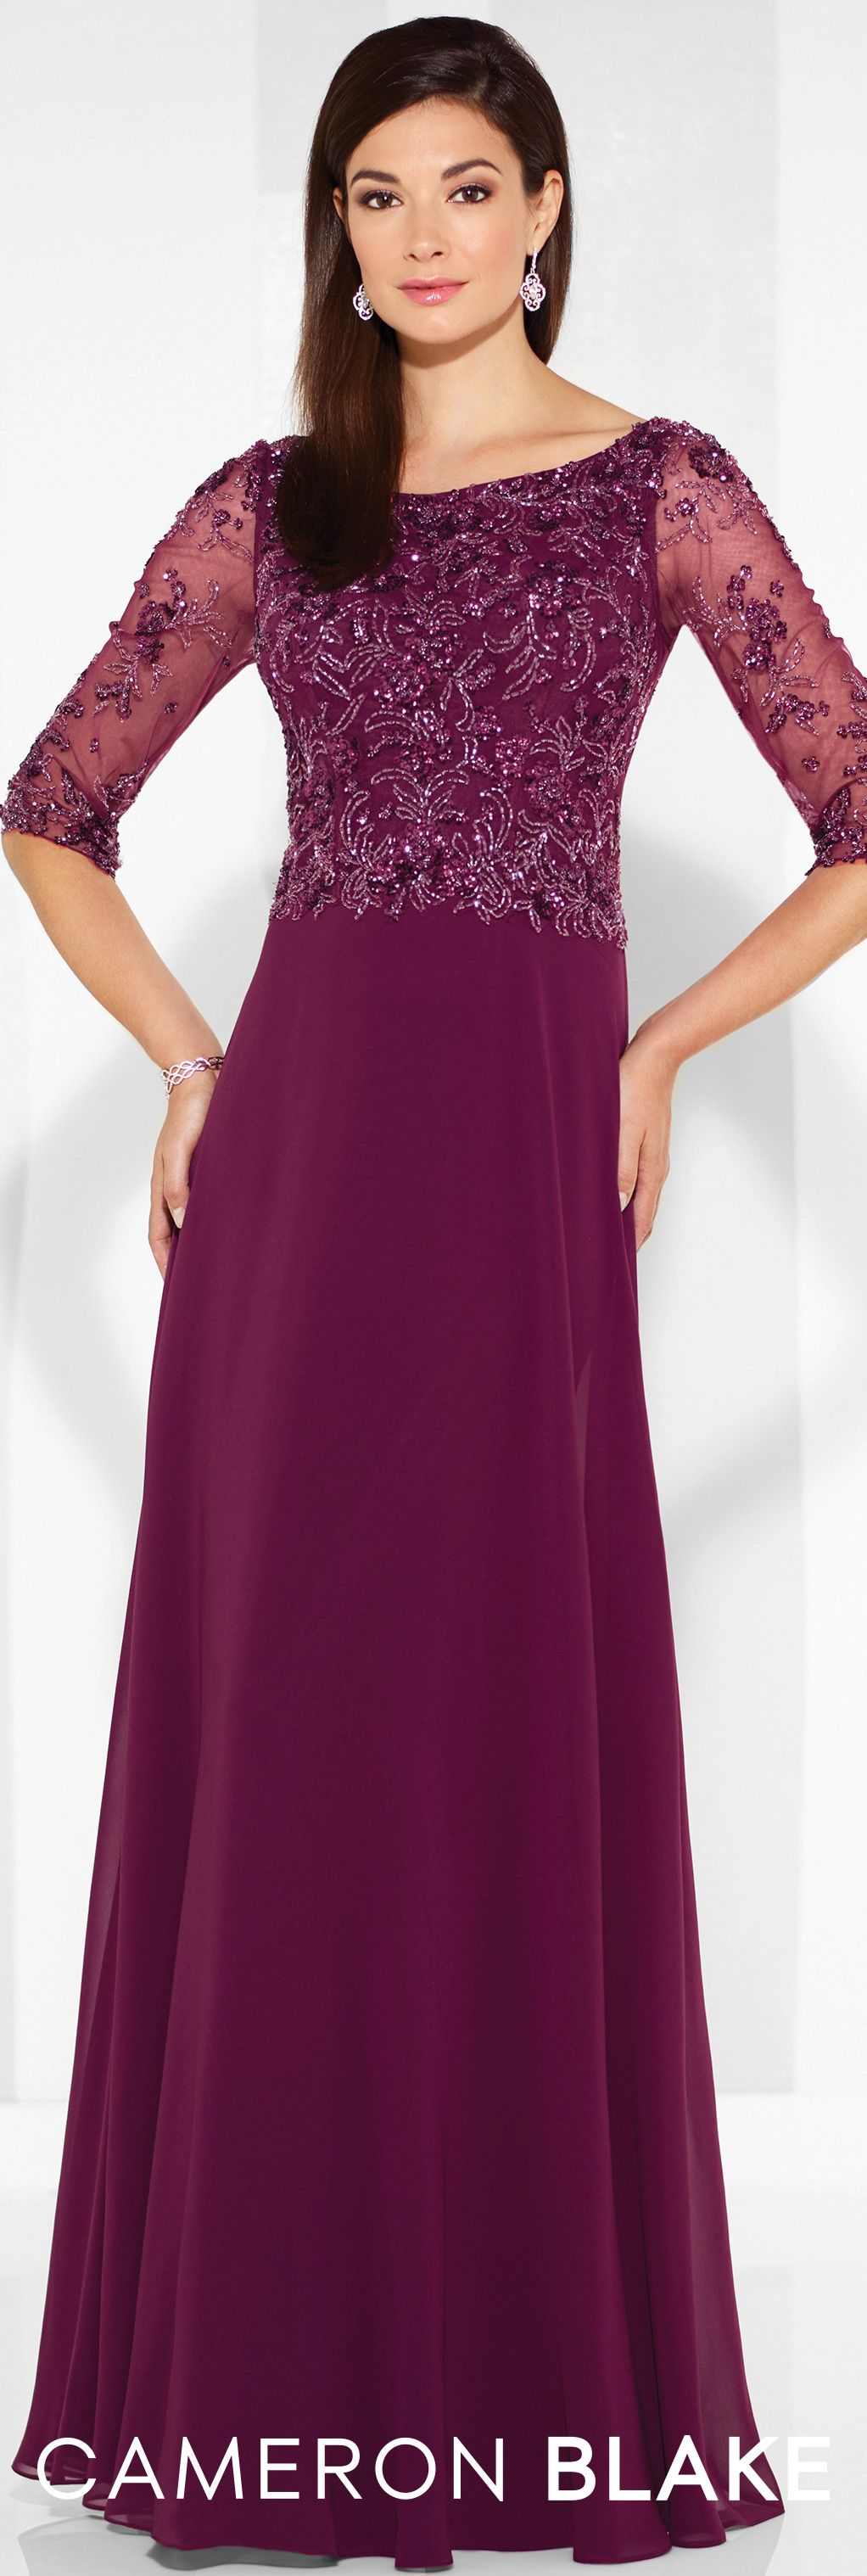 Cameron Blake Mother Of The Bride Dresses Amp Dress Suits